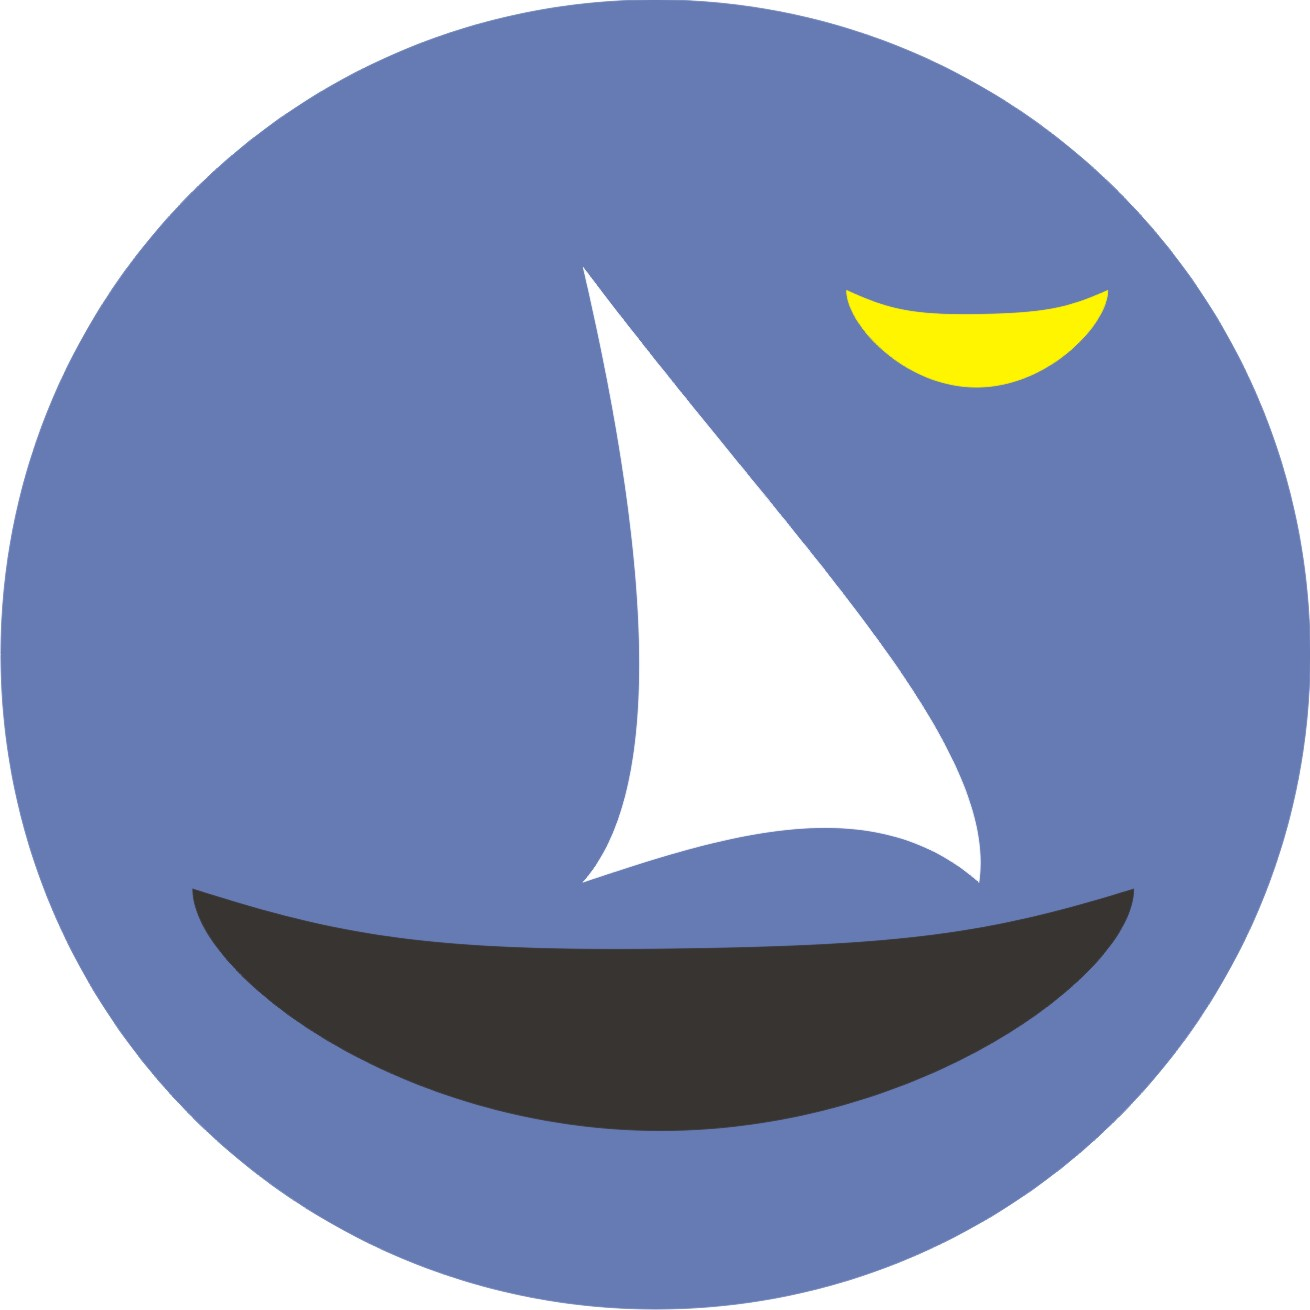 Click image for larger version  Name:smiley boat.jpg Views:176 Size:66.8 KB ID:45406